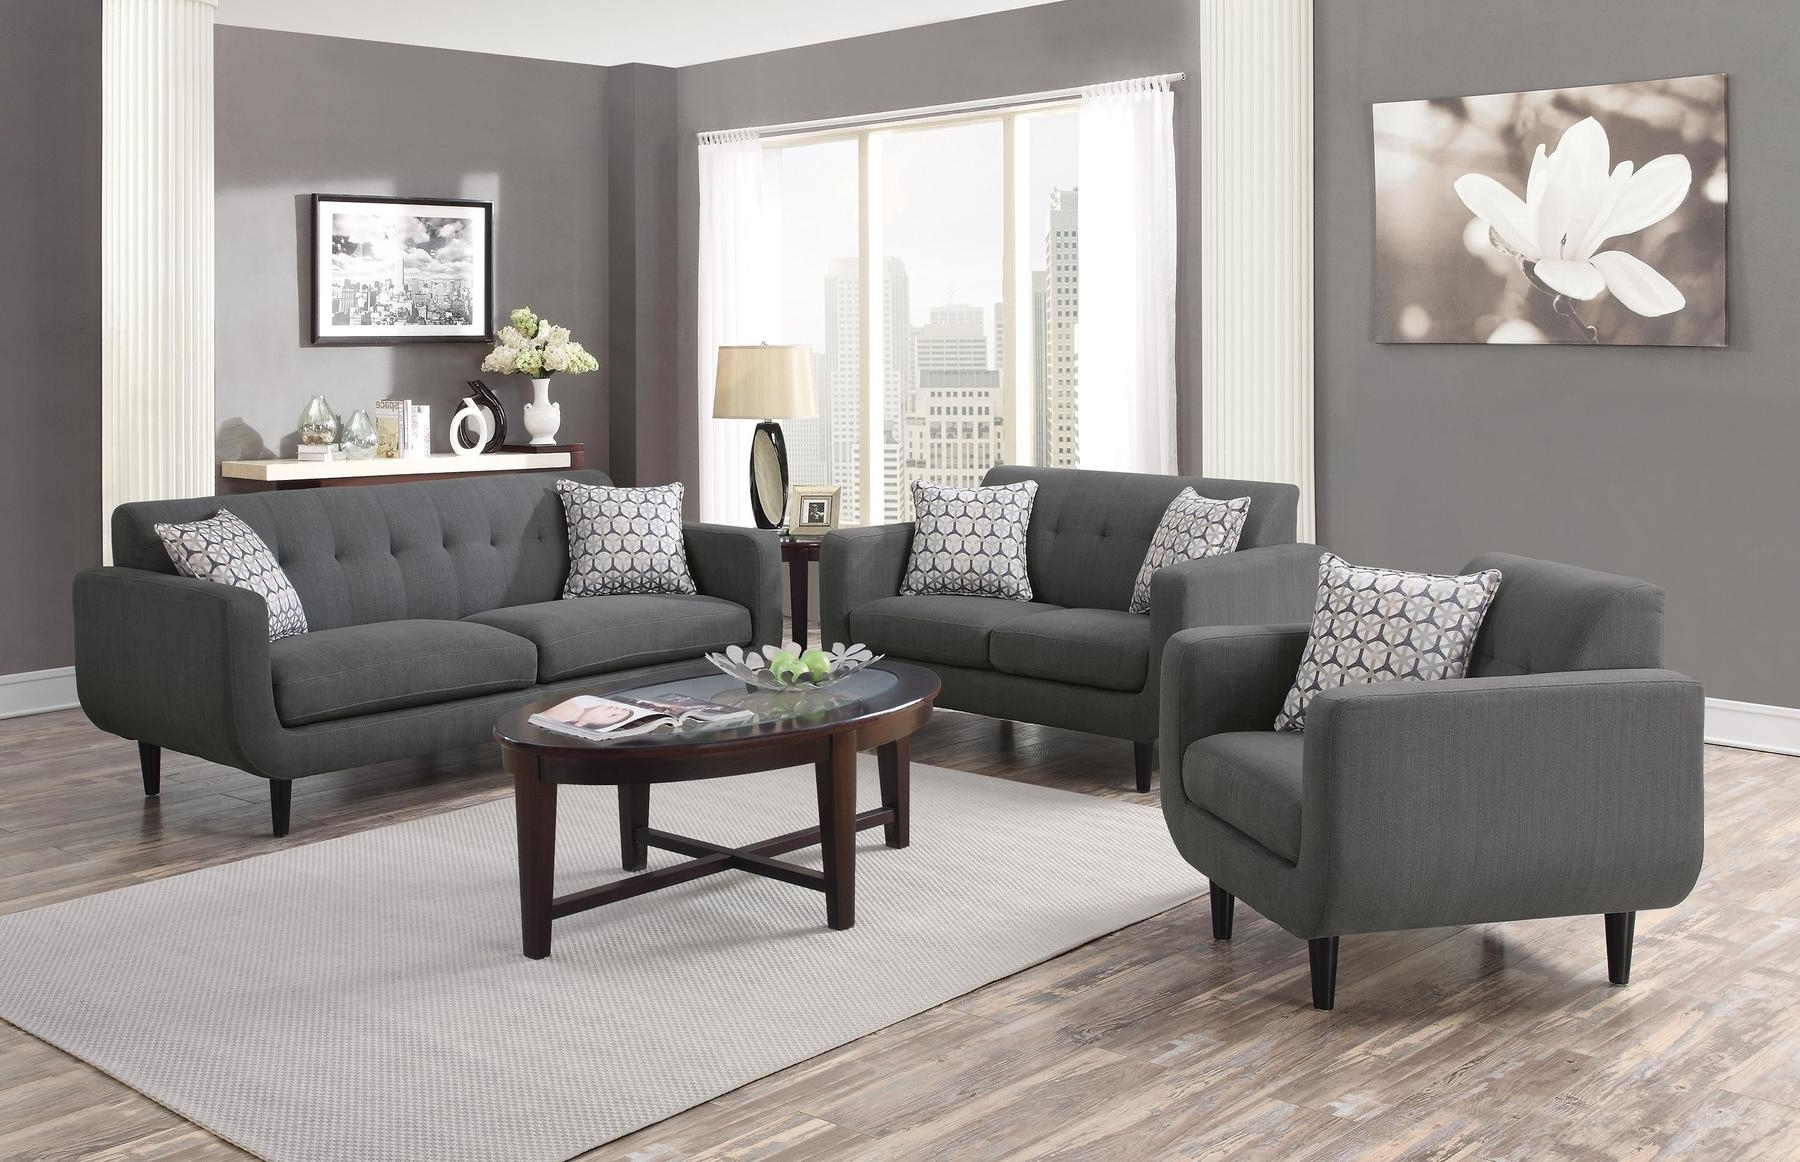 Newest Fabric Sofas Inside Stansall Gray Sofa 505201 Coaster Furniture Fabric Sofas At (View 7 of 15)